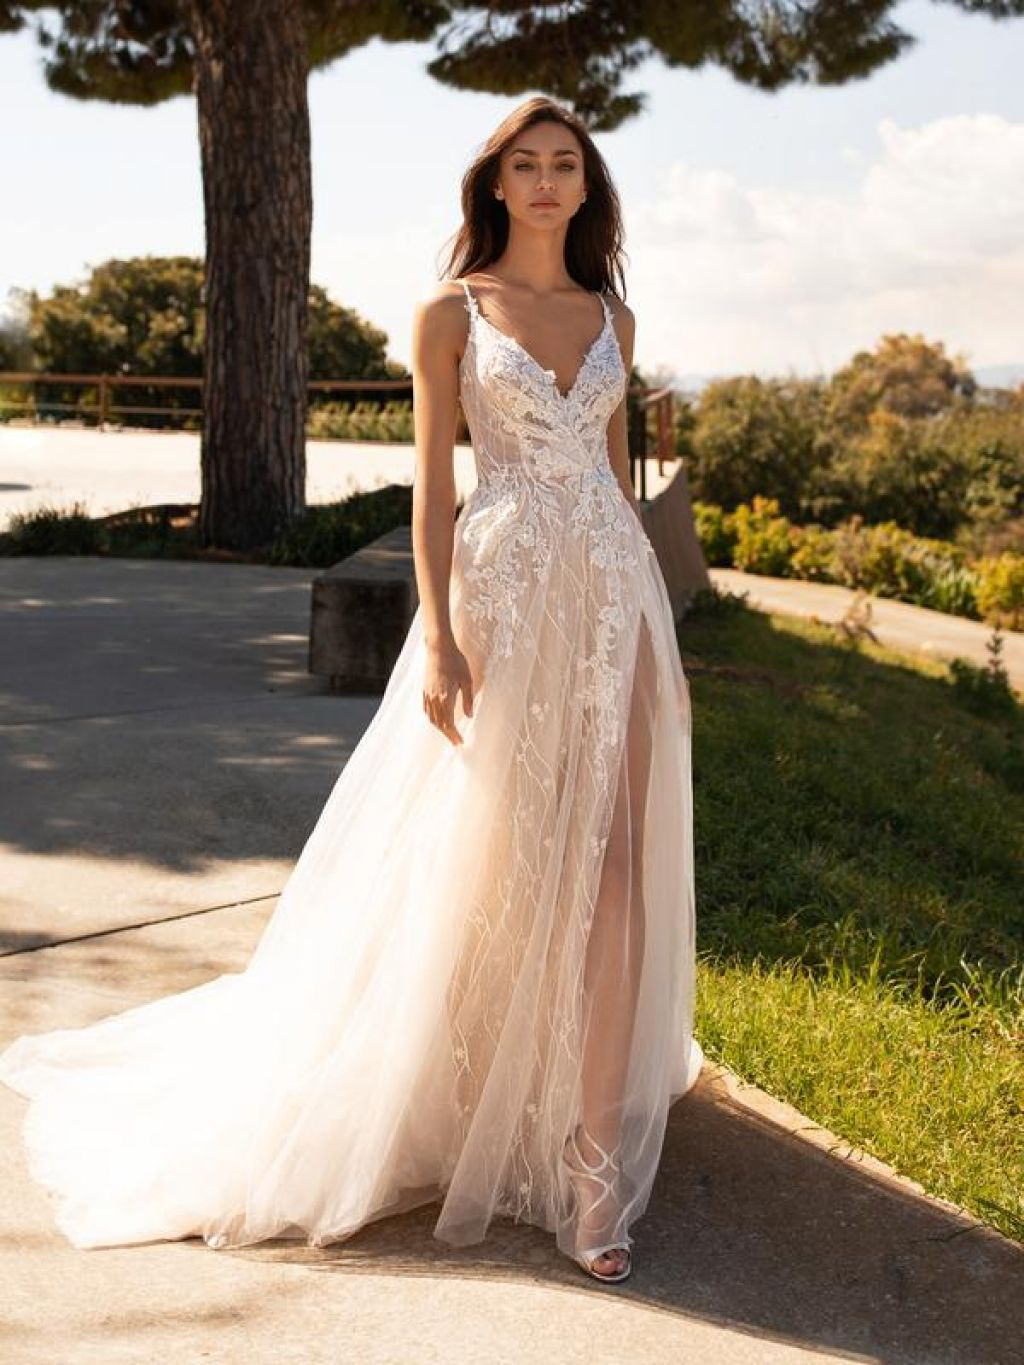 Bride in a-line wedding dress with high slit decorative lace by Pronovias